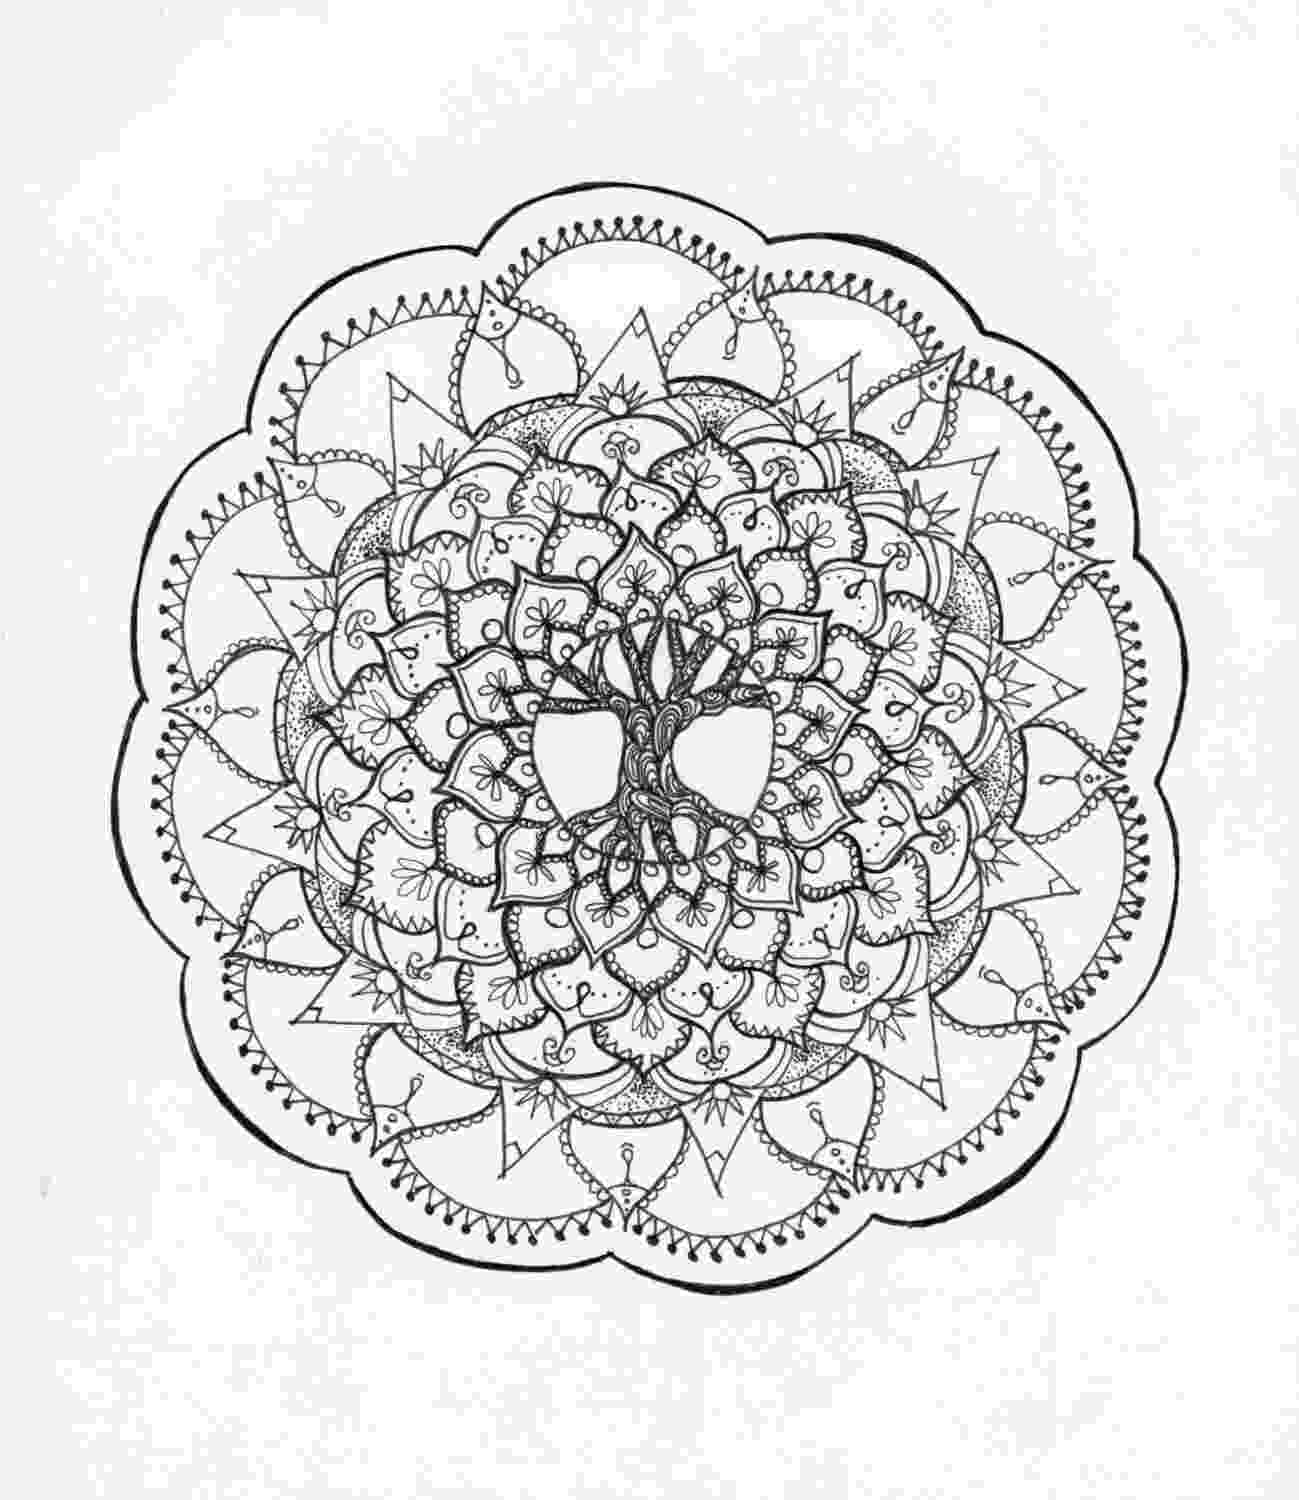 tree of life coloring pages tree of life zentangle mandala adult coloring page etsy pages tree coloring life of